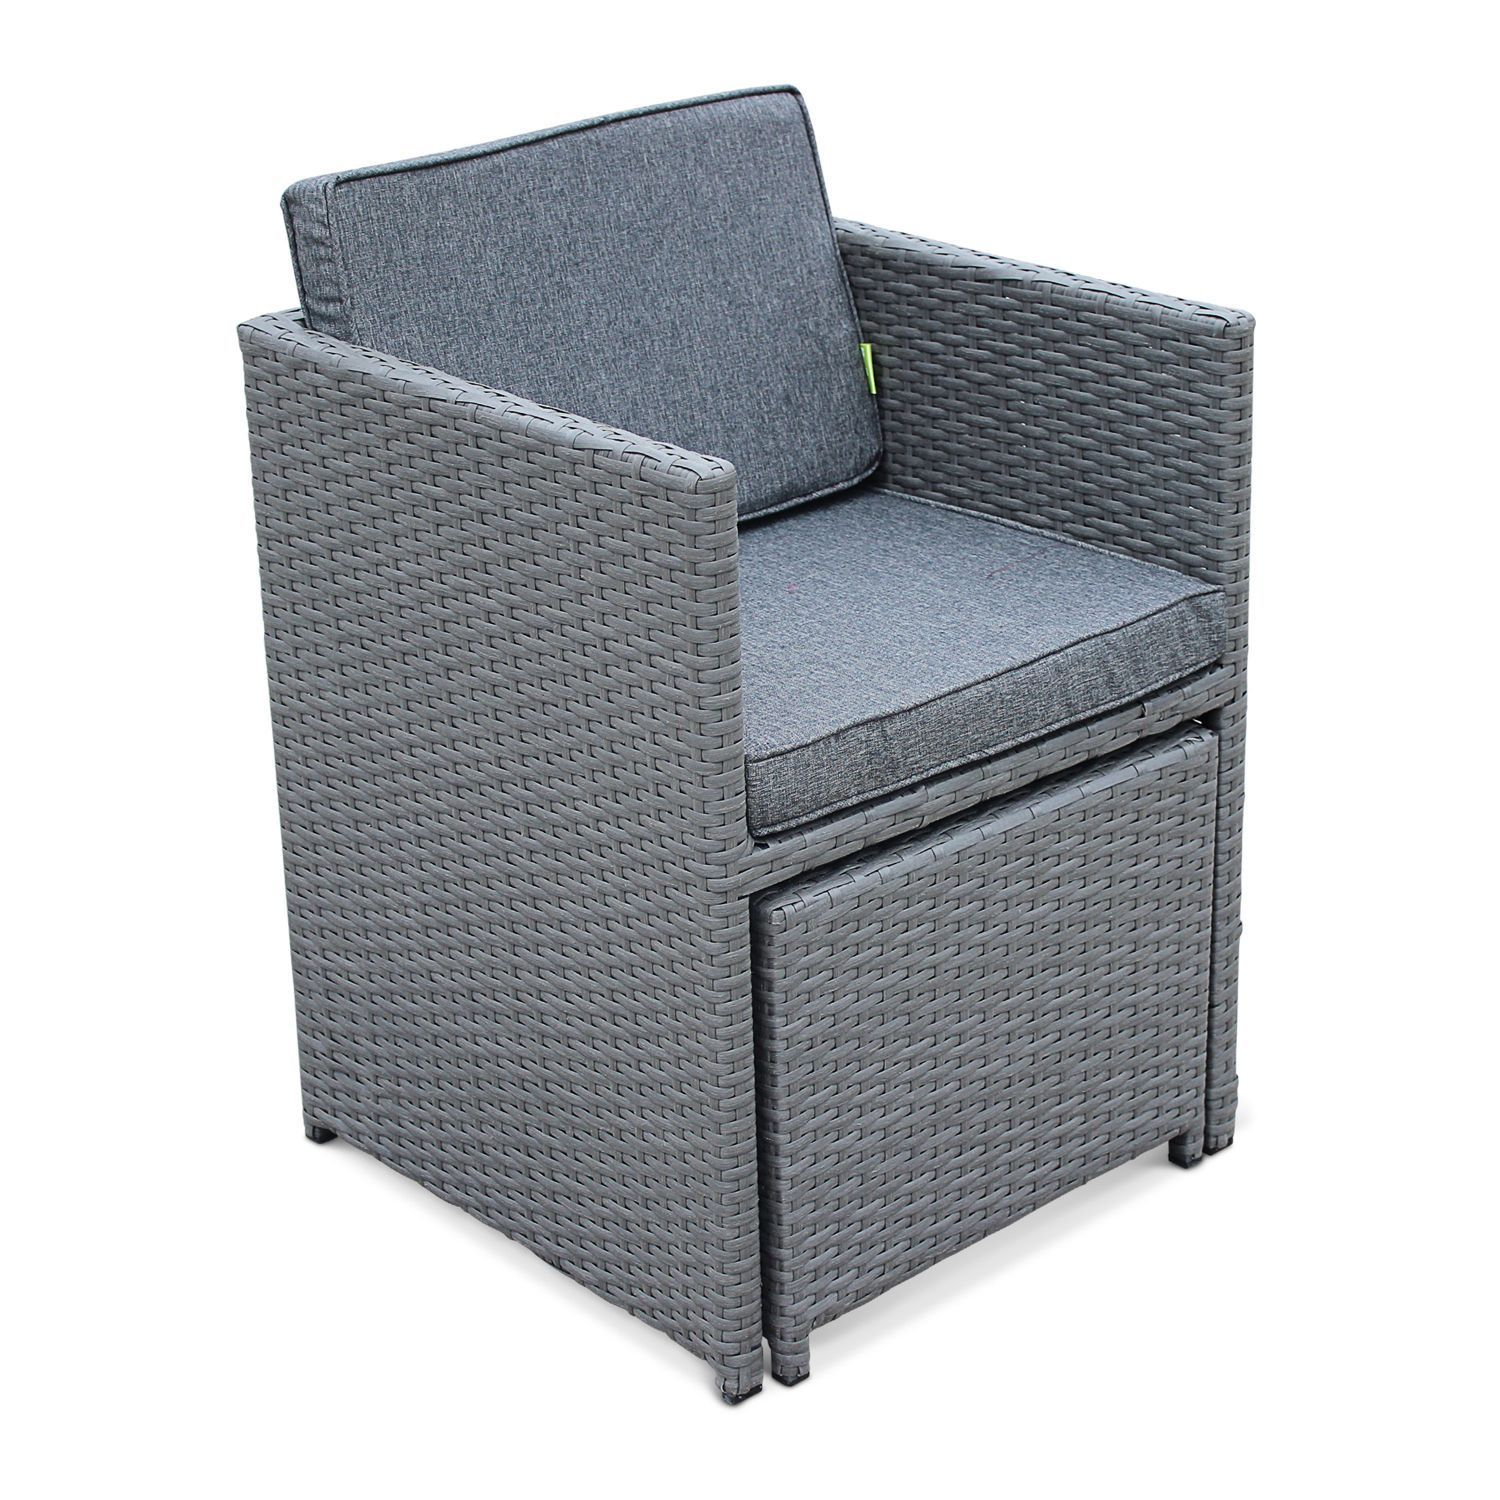 Outdoor Dining Set 10 seater VASTO 10 Grey Wicker/Grey Cushions